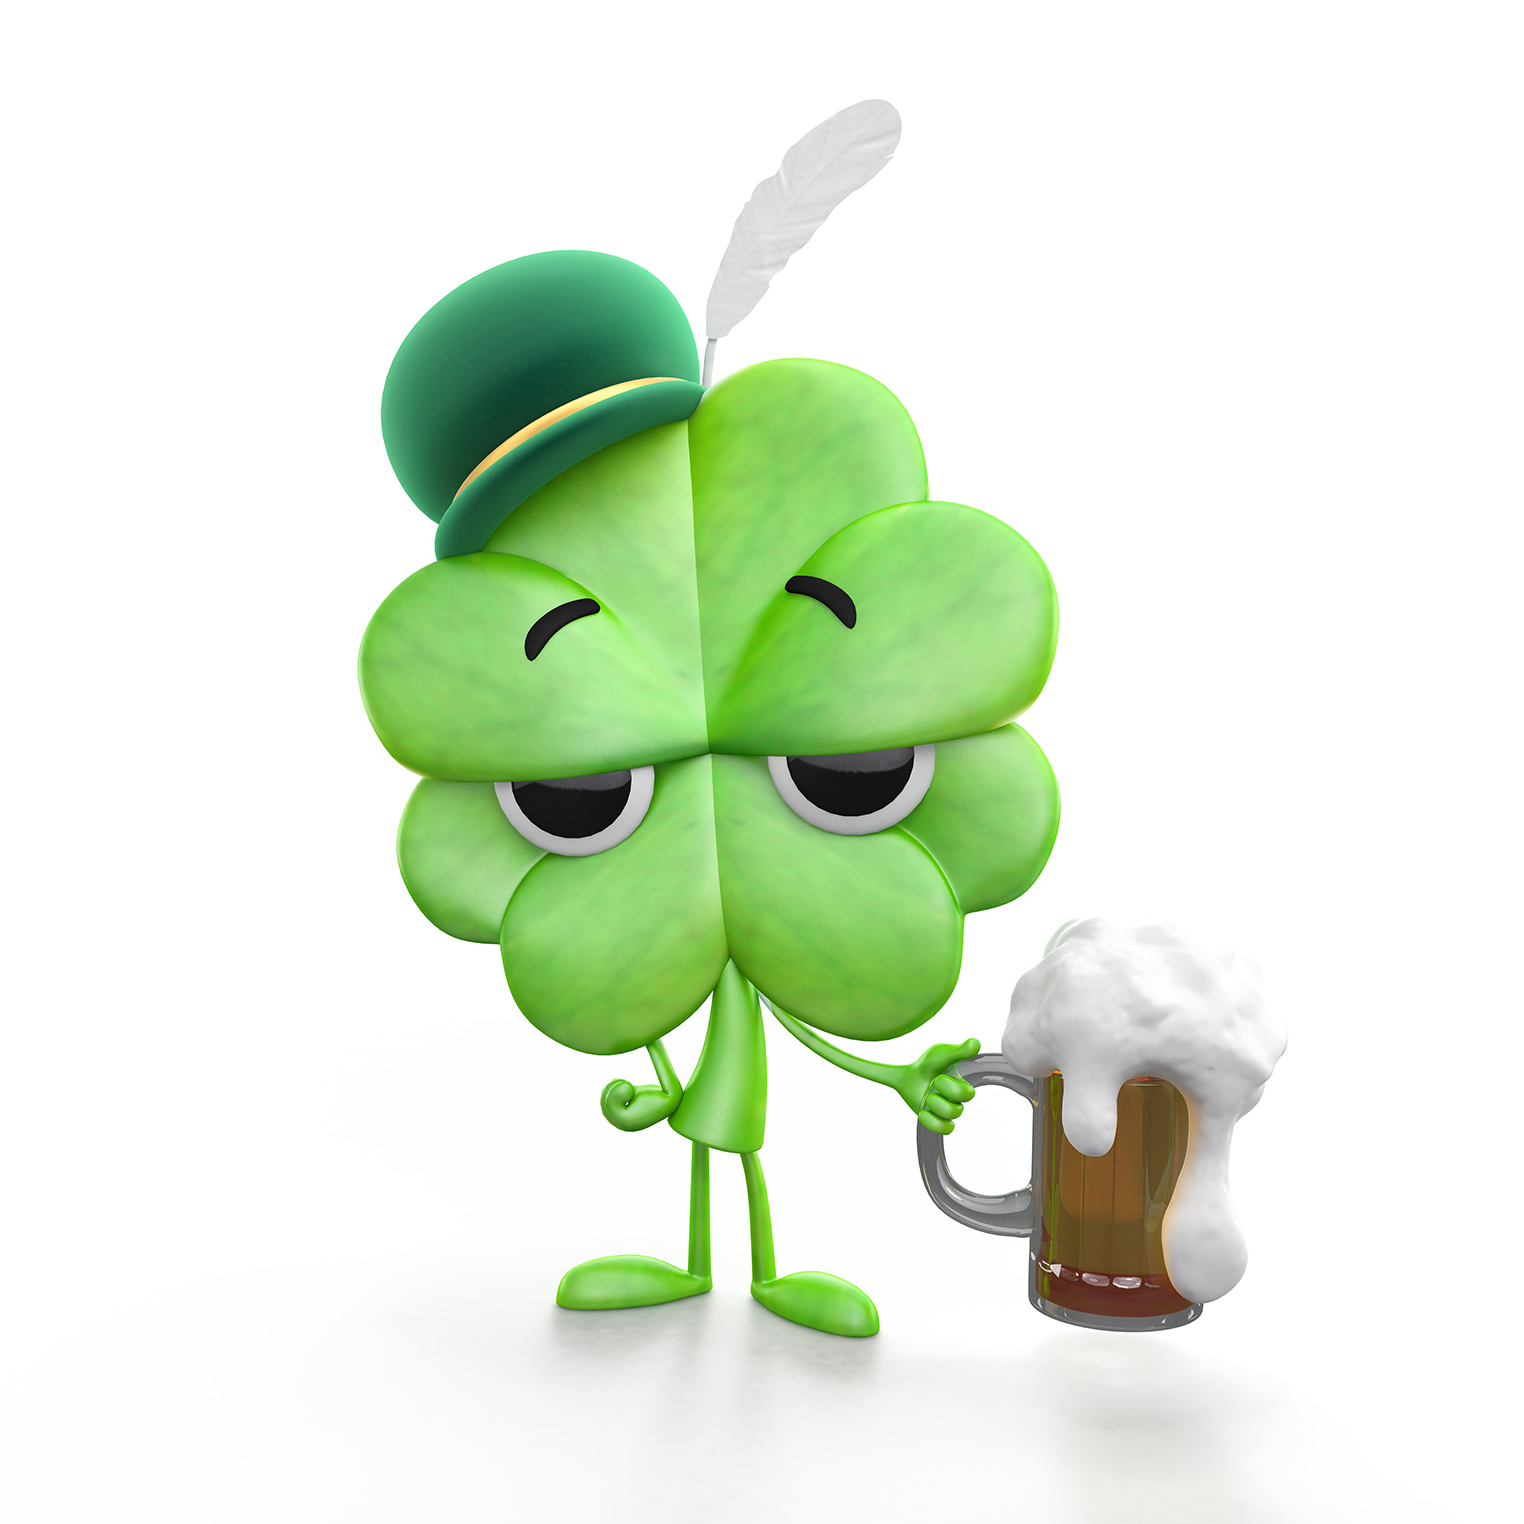 Fast-Company-Mascot-Marketing-1clover_o.jpg